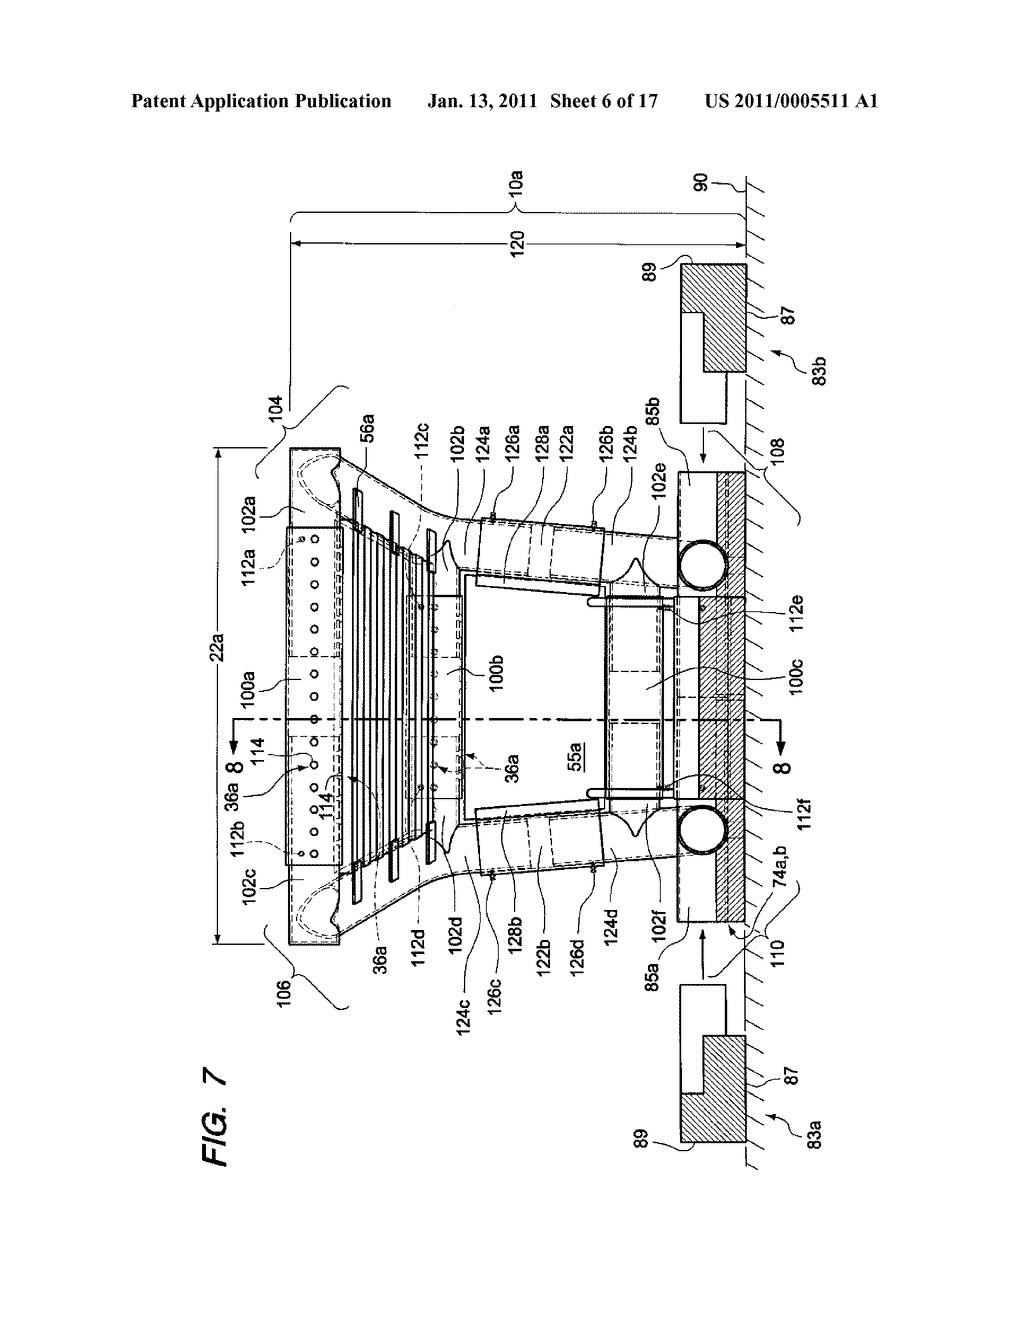 Fire Grate for Enhanced Combustion with Vertical and Horizontal Expansion Sleeves - diagram, schematic, and image 07